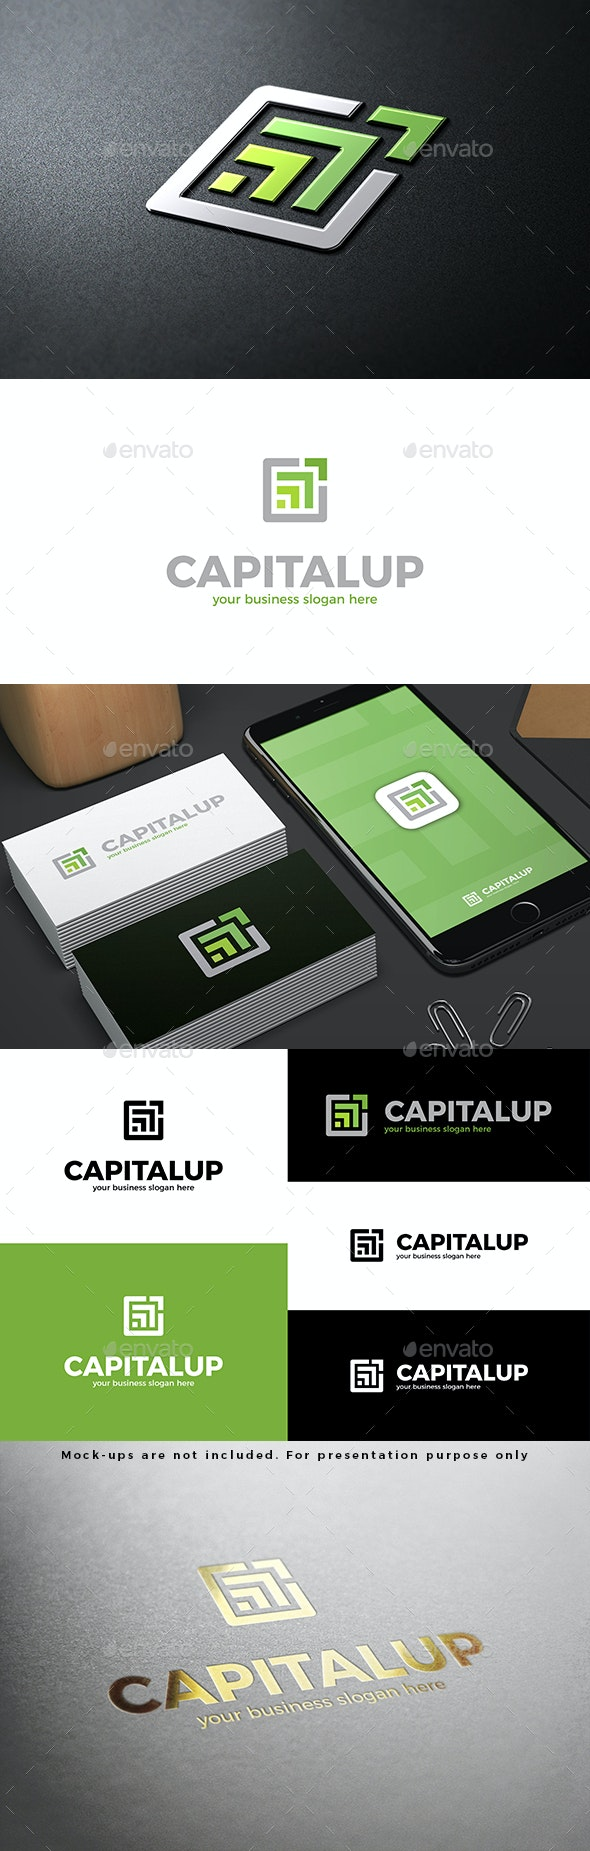 Capital Up Logo Abstract Green Arrows - Abstract Logo Templates